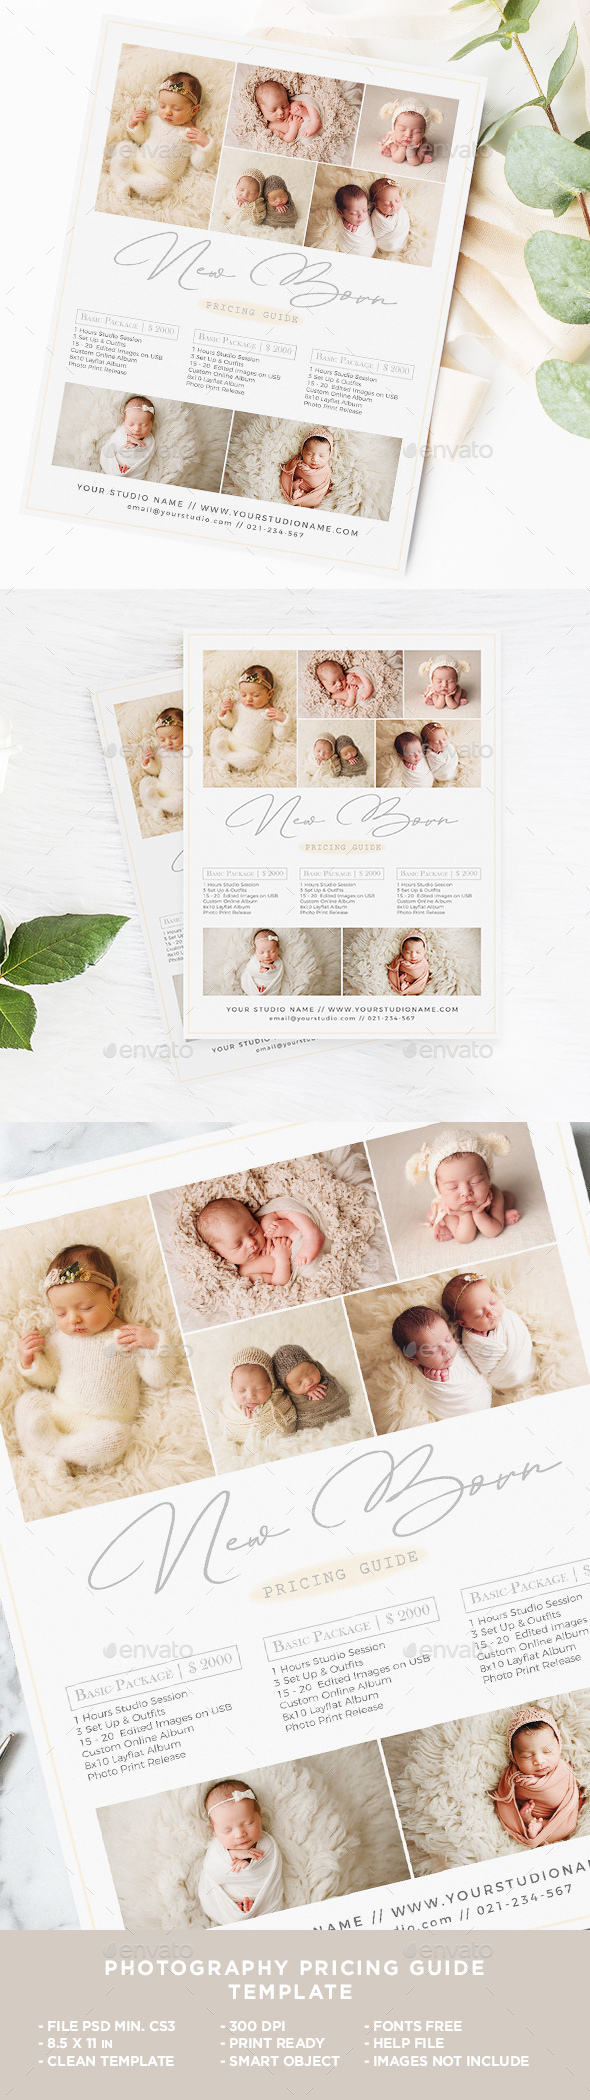 New Born Photography Flyer - Corporate Flyer